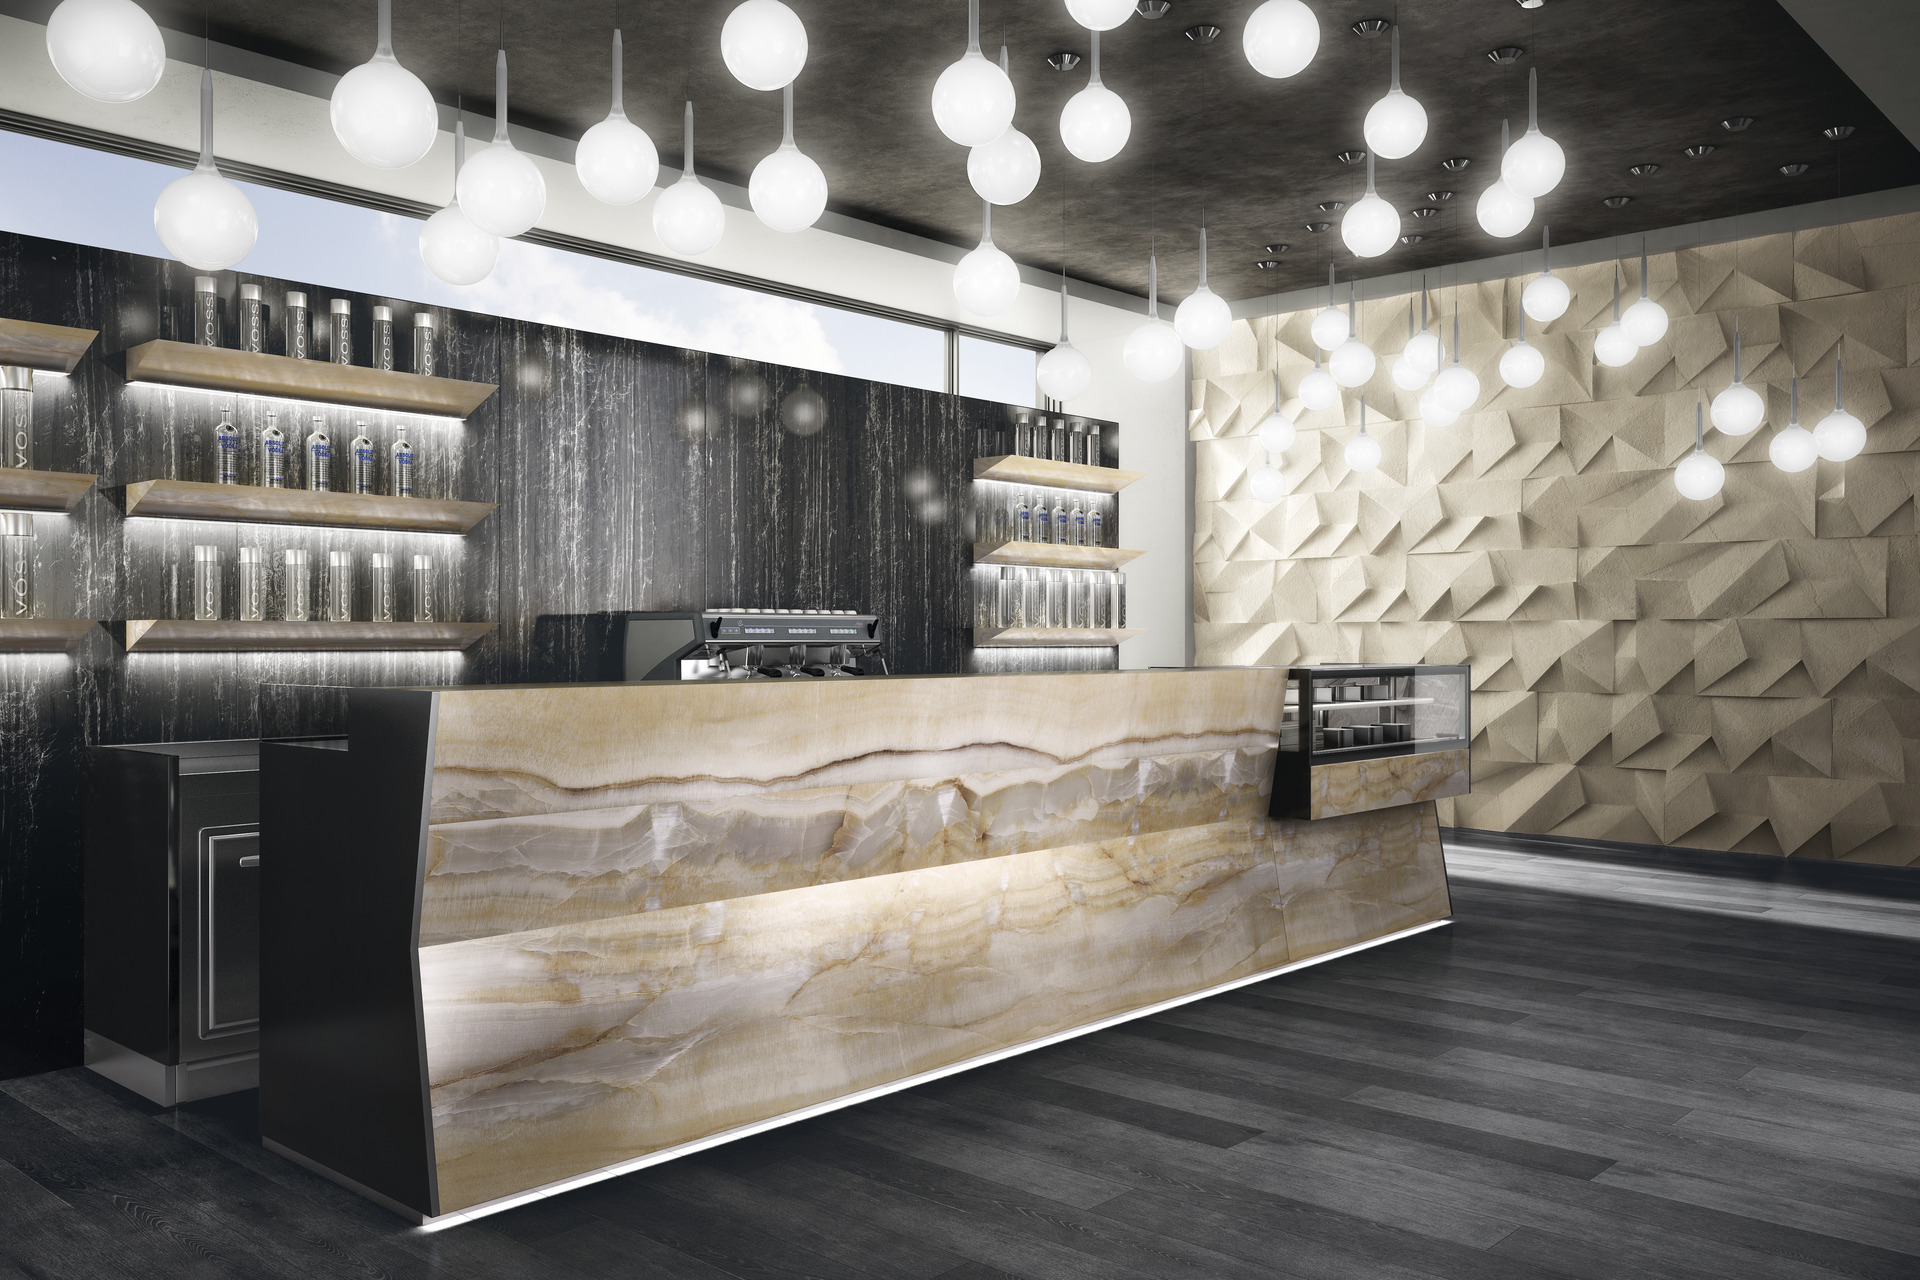 Marble Effect Porcelain Tiles - Onici